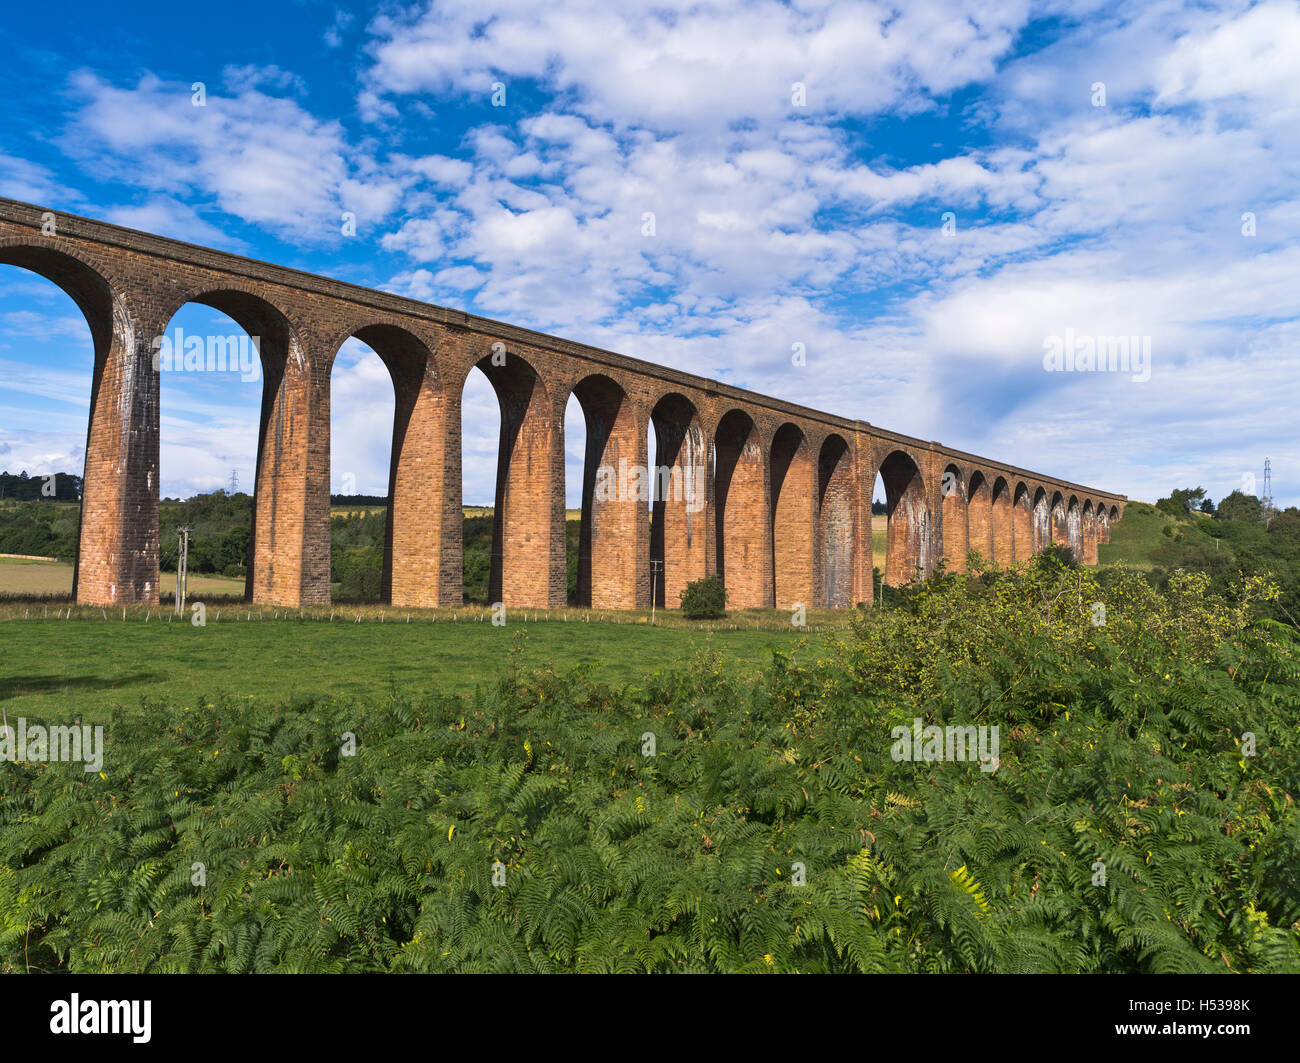 dh Nairn Railway Viaduct NAIRN VALLEY INVERNESS SHIRE Culloden Moor Viaduct spanning the River Nairn scotland - Stock Image